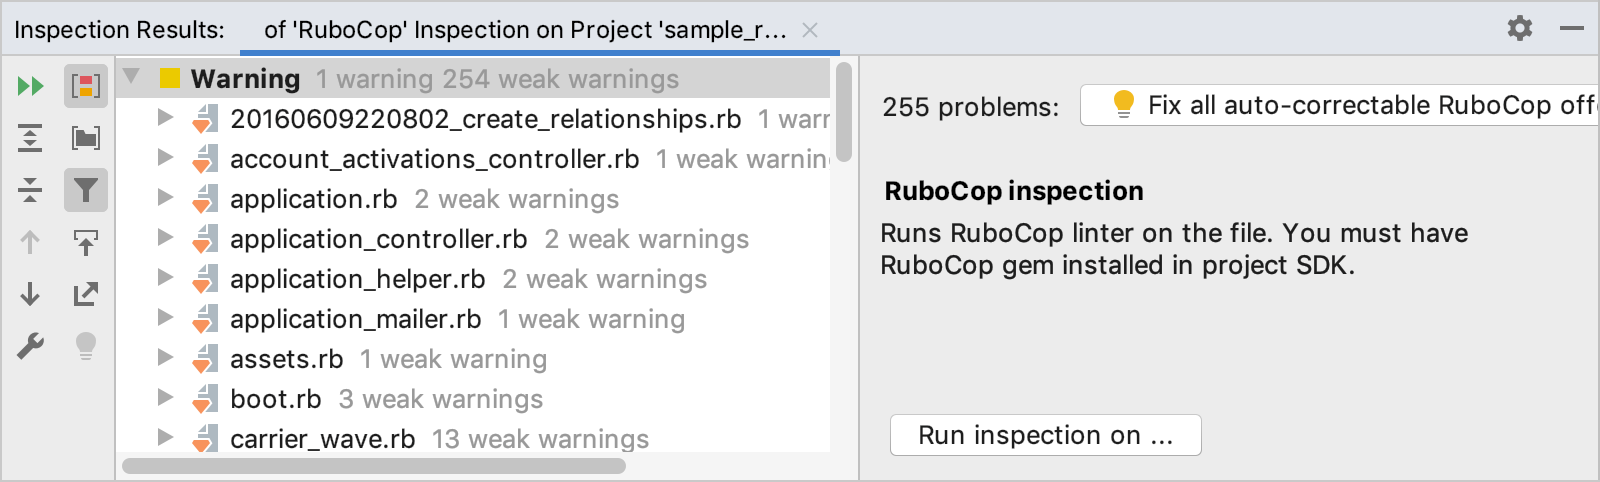 RuboCop inspection results